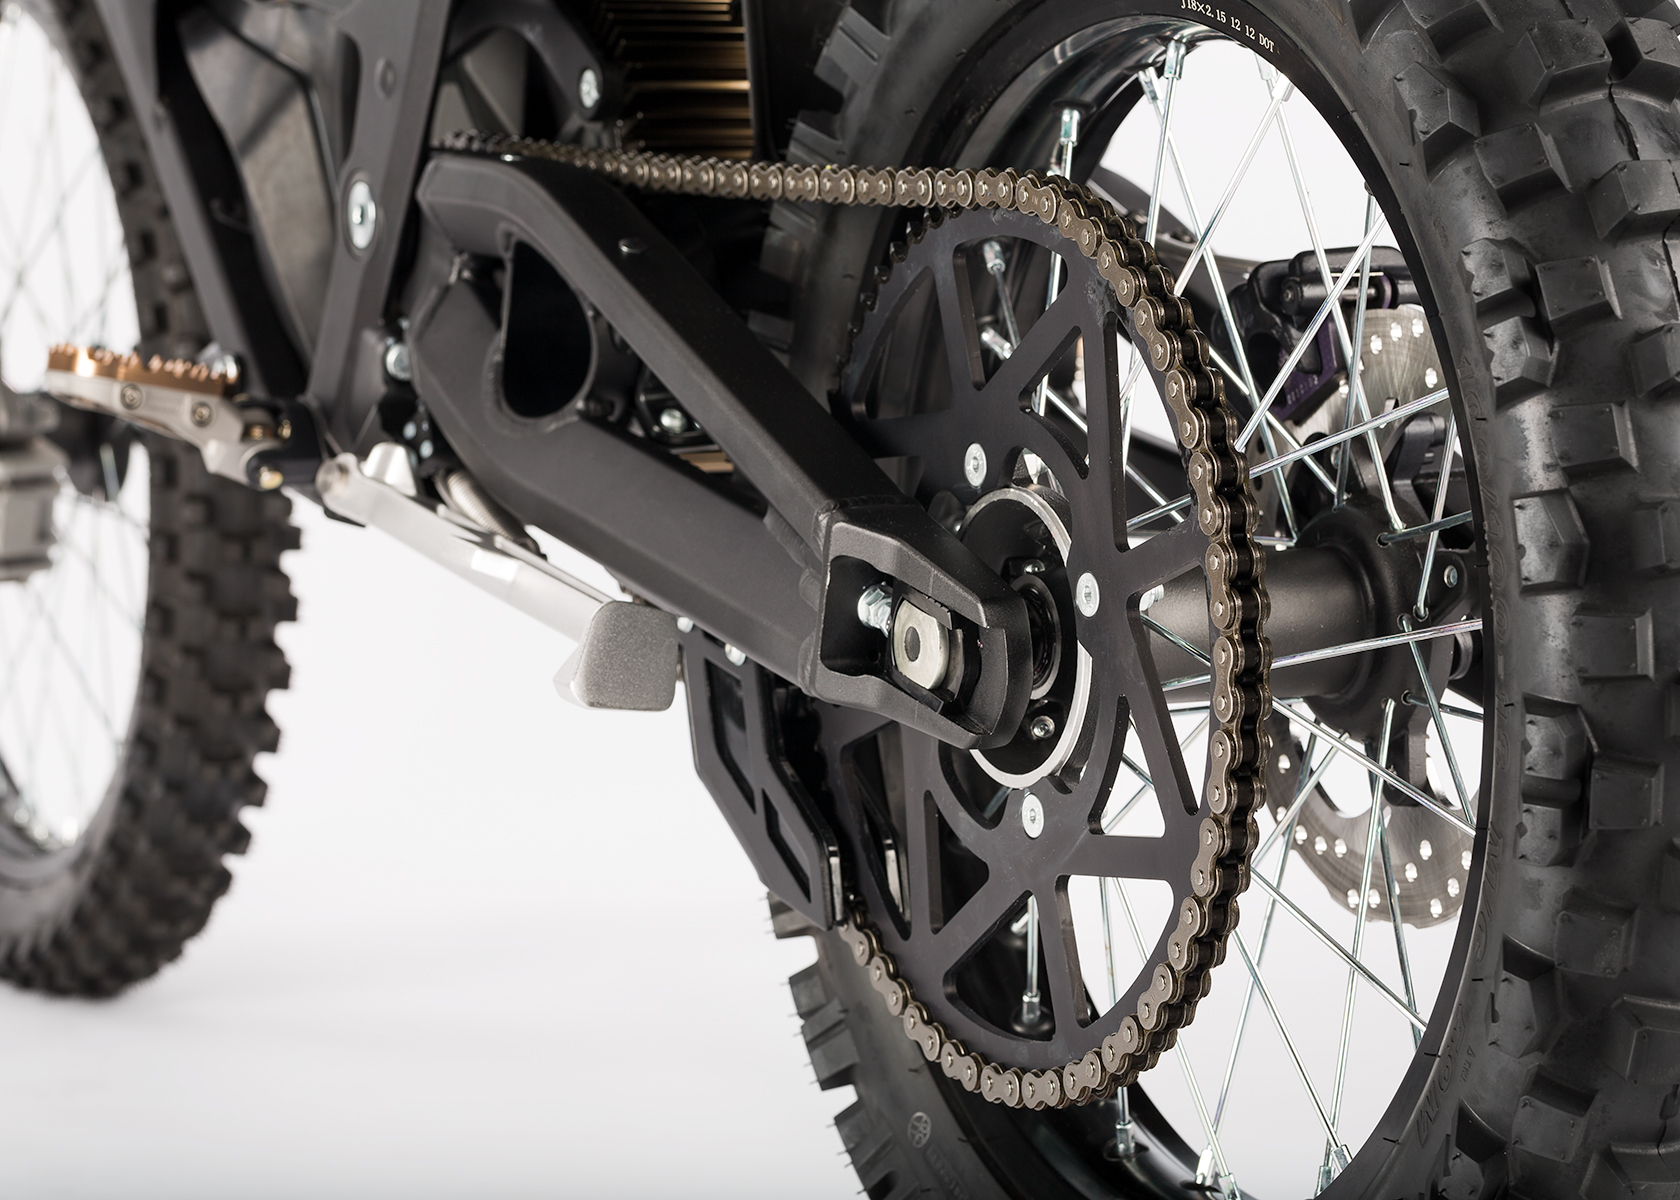 2014 Zero Police Electric Motorcycle: Chain